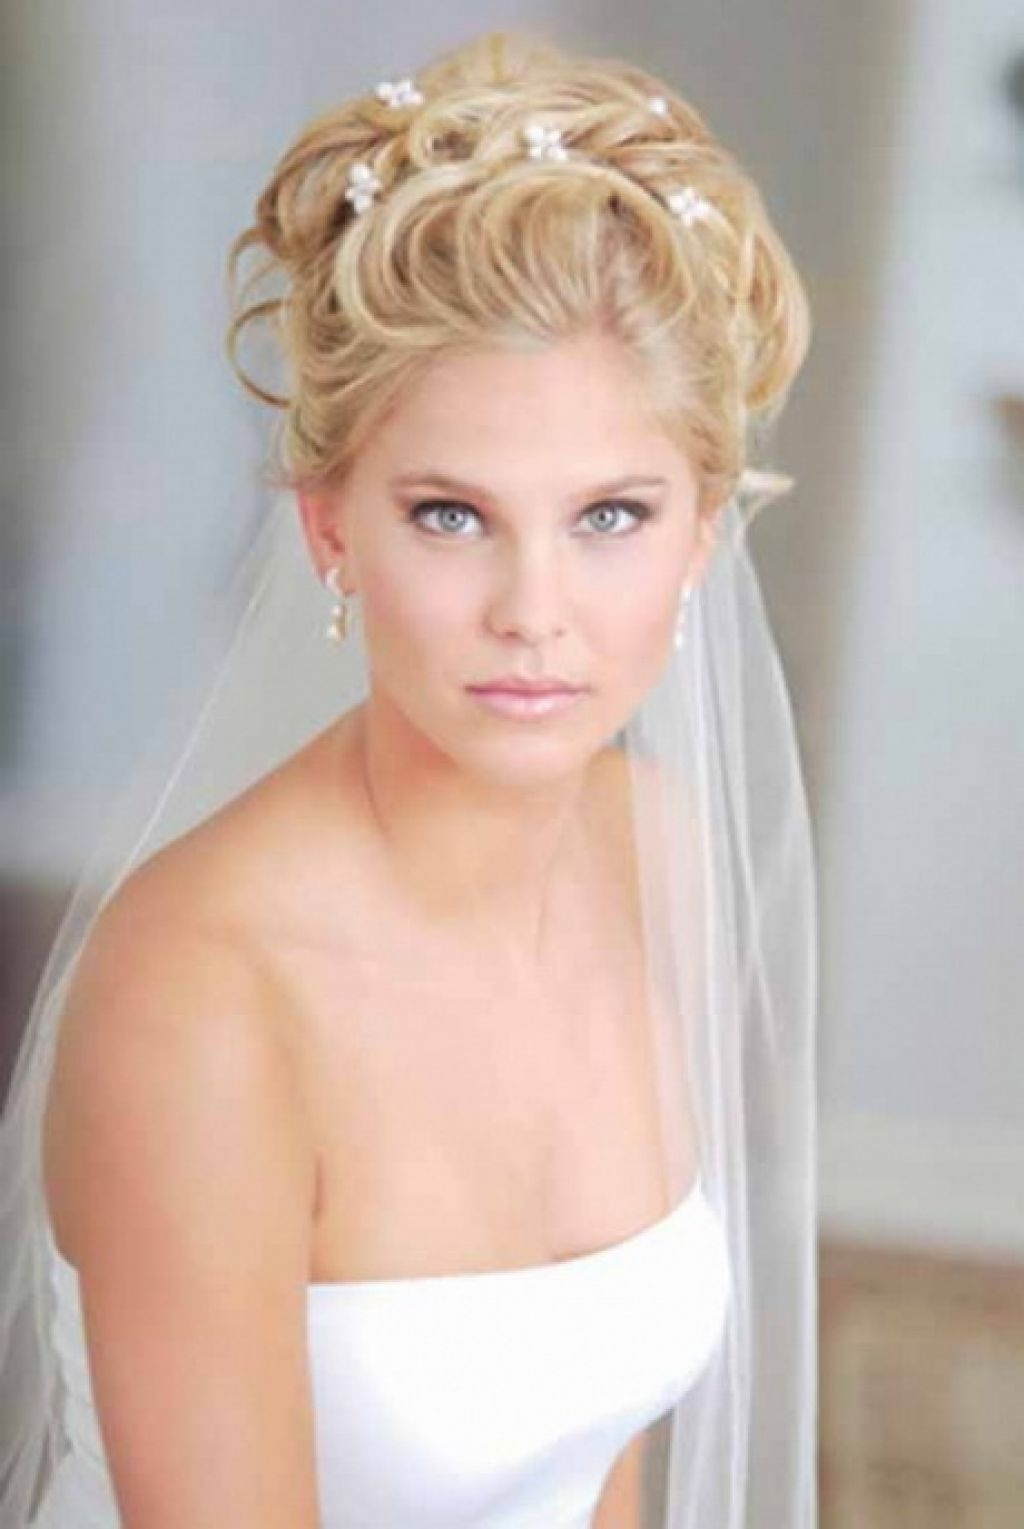 The Best Cool With Short Hair Hairstyle For Women U Man Of Wedding For Well Known Wedding Hairstyles For Shoulder Length Hair With Veil (View 14 of 15)